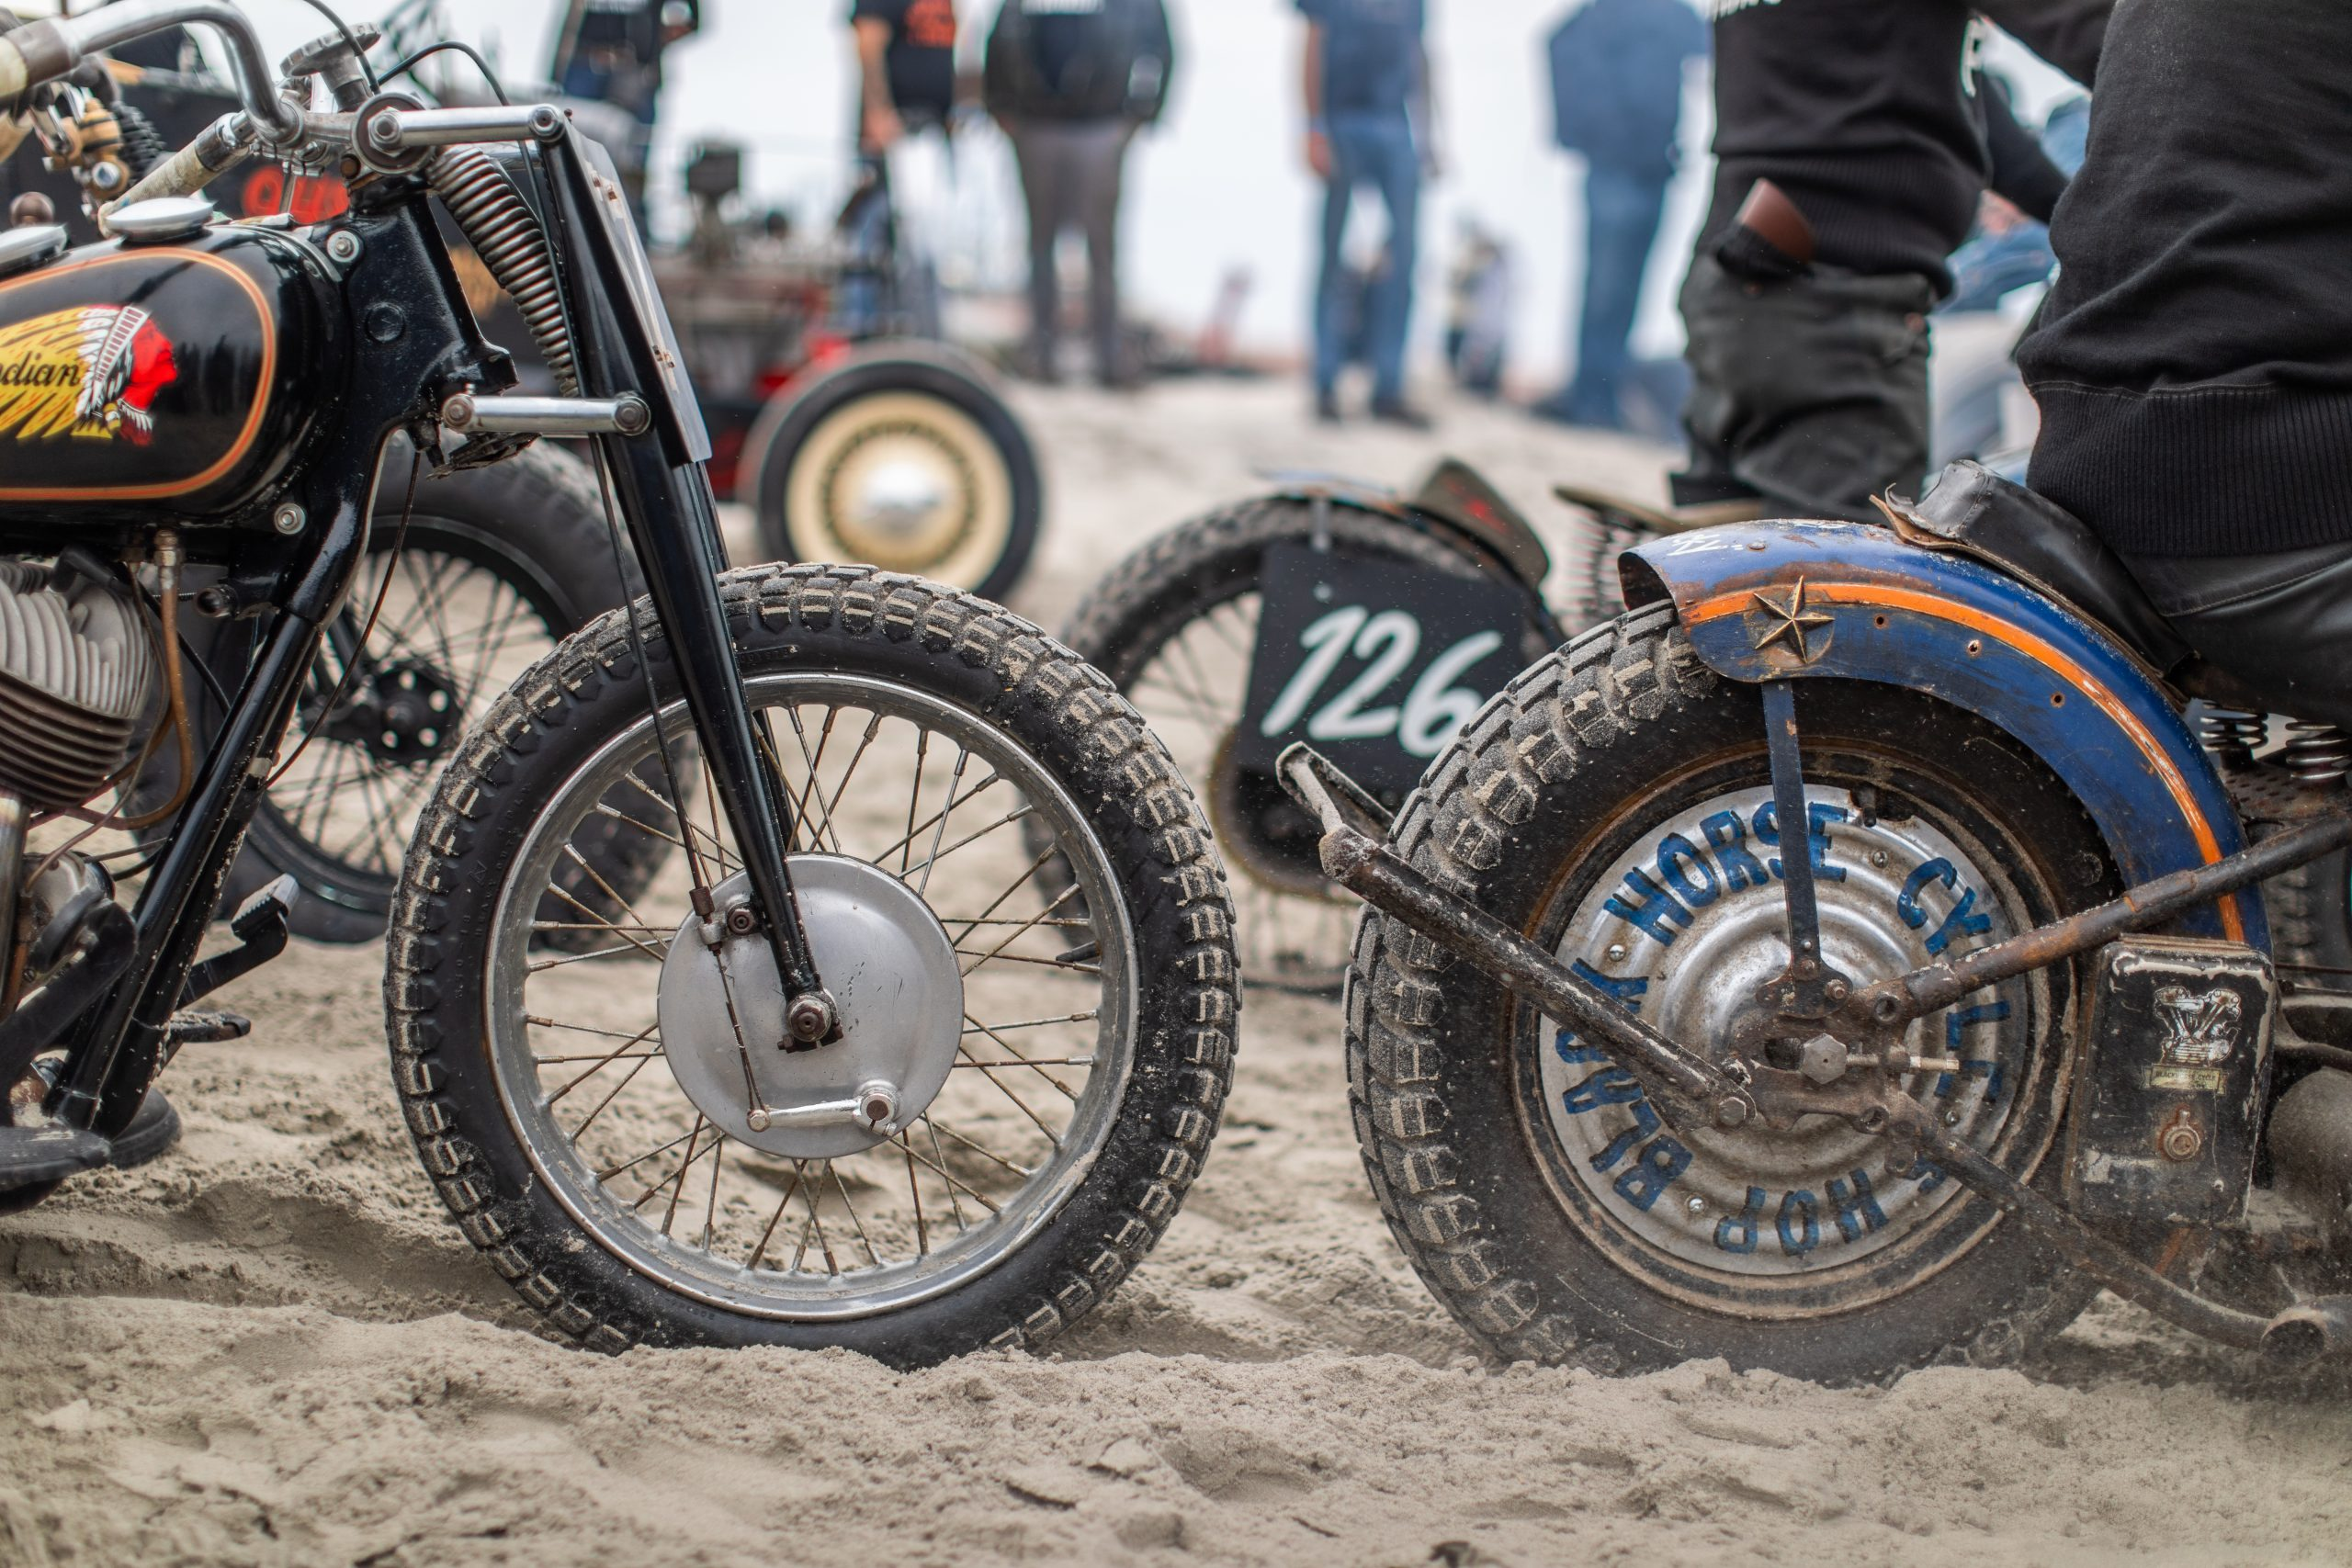 moto front and rear beach sand racing detail